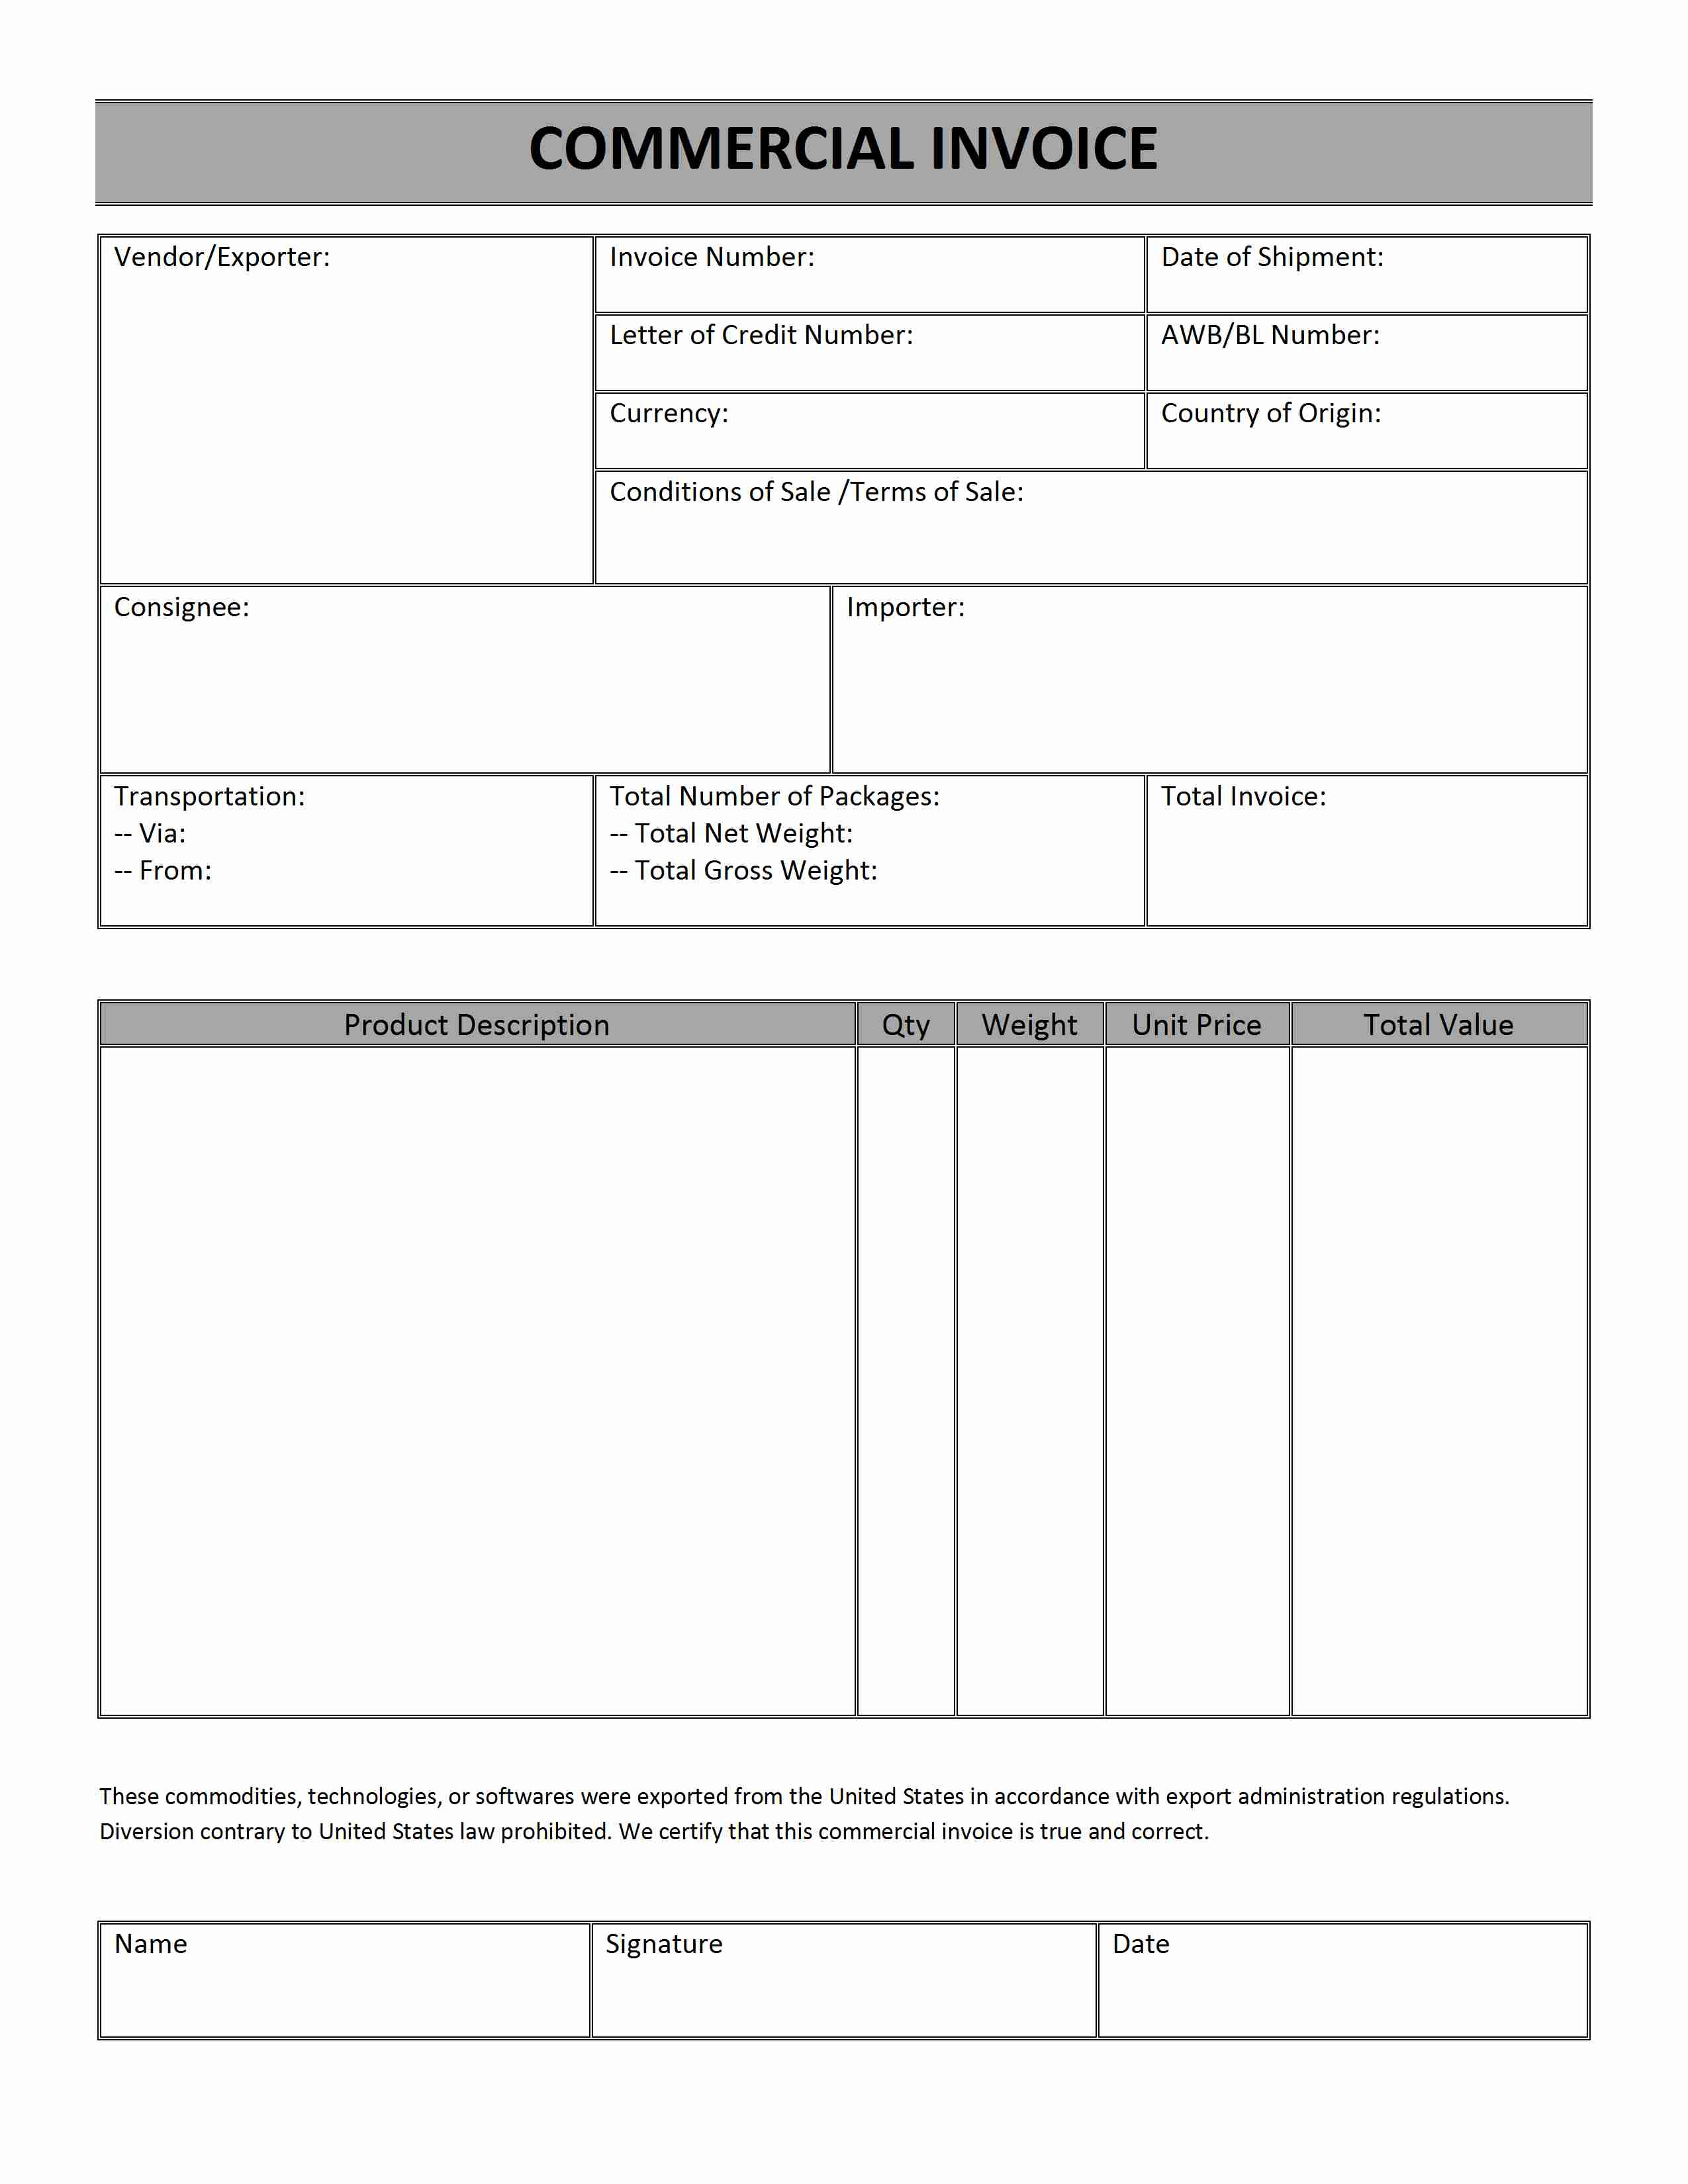 Aldiablosus  Seductive Printable Sales Invoice Simple Invoice Form Free Invoice  With Goodlooking Printable Receipt Free  Free Printable Raffle Tickets  Receipt   Printable With Endearing Late Payment Invoice Template Also Online Invoice Generator Uk In Addition Sale Invoice Format In Excel Free Download And Invoice Templates For Free As Well As Best Invoice Software Mac Additionally Invoice Audit Services From Happytomco With Aldiablosus  Goodlooking Printable Sales Invoice Simple Invoice Form Free Invoice  With Endearing Printable Receipt Free  Free Printable Raffle Tickets  Receipt   Printable And Seductive Late Payment Invoice Template Also Online Invoice Generator Uk In Addition Sale Invoice Format In Excel Free Download From Happytomco